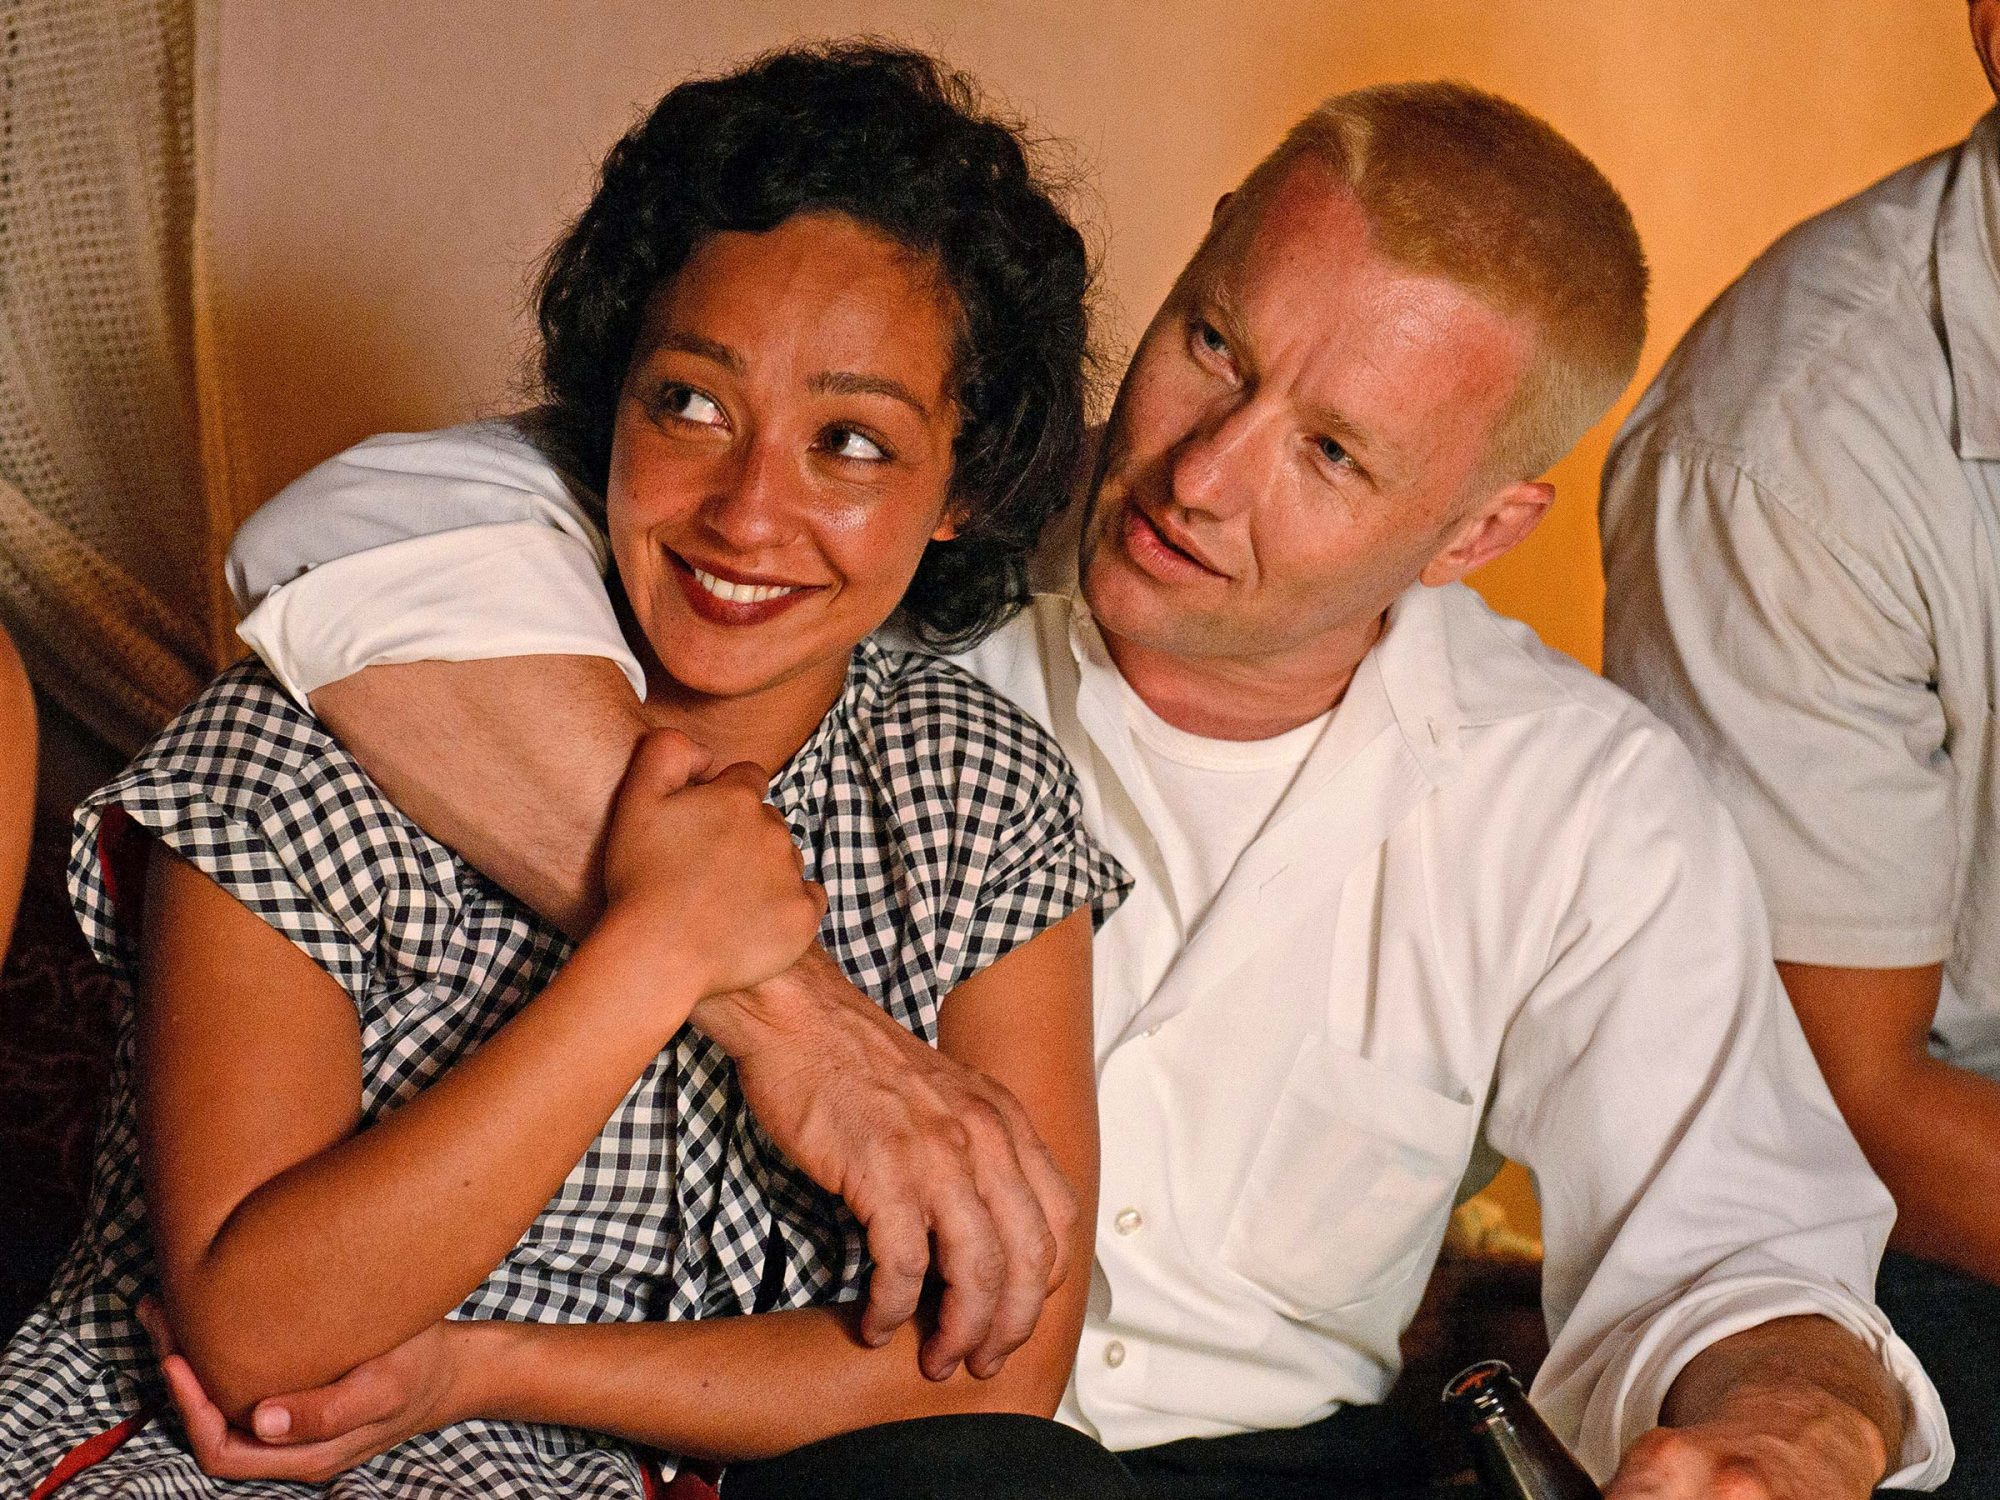 LOVING (2016)Ruth Negga (left) as Mildred and Joel Edgerton (right) as Richard